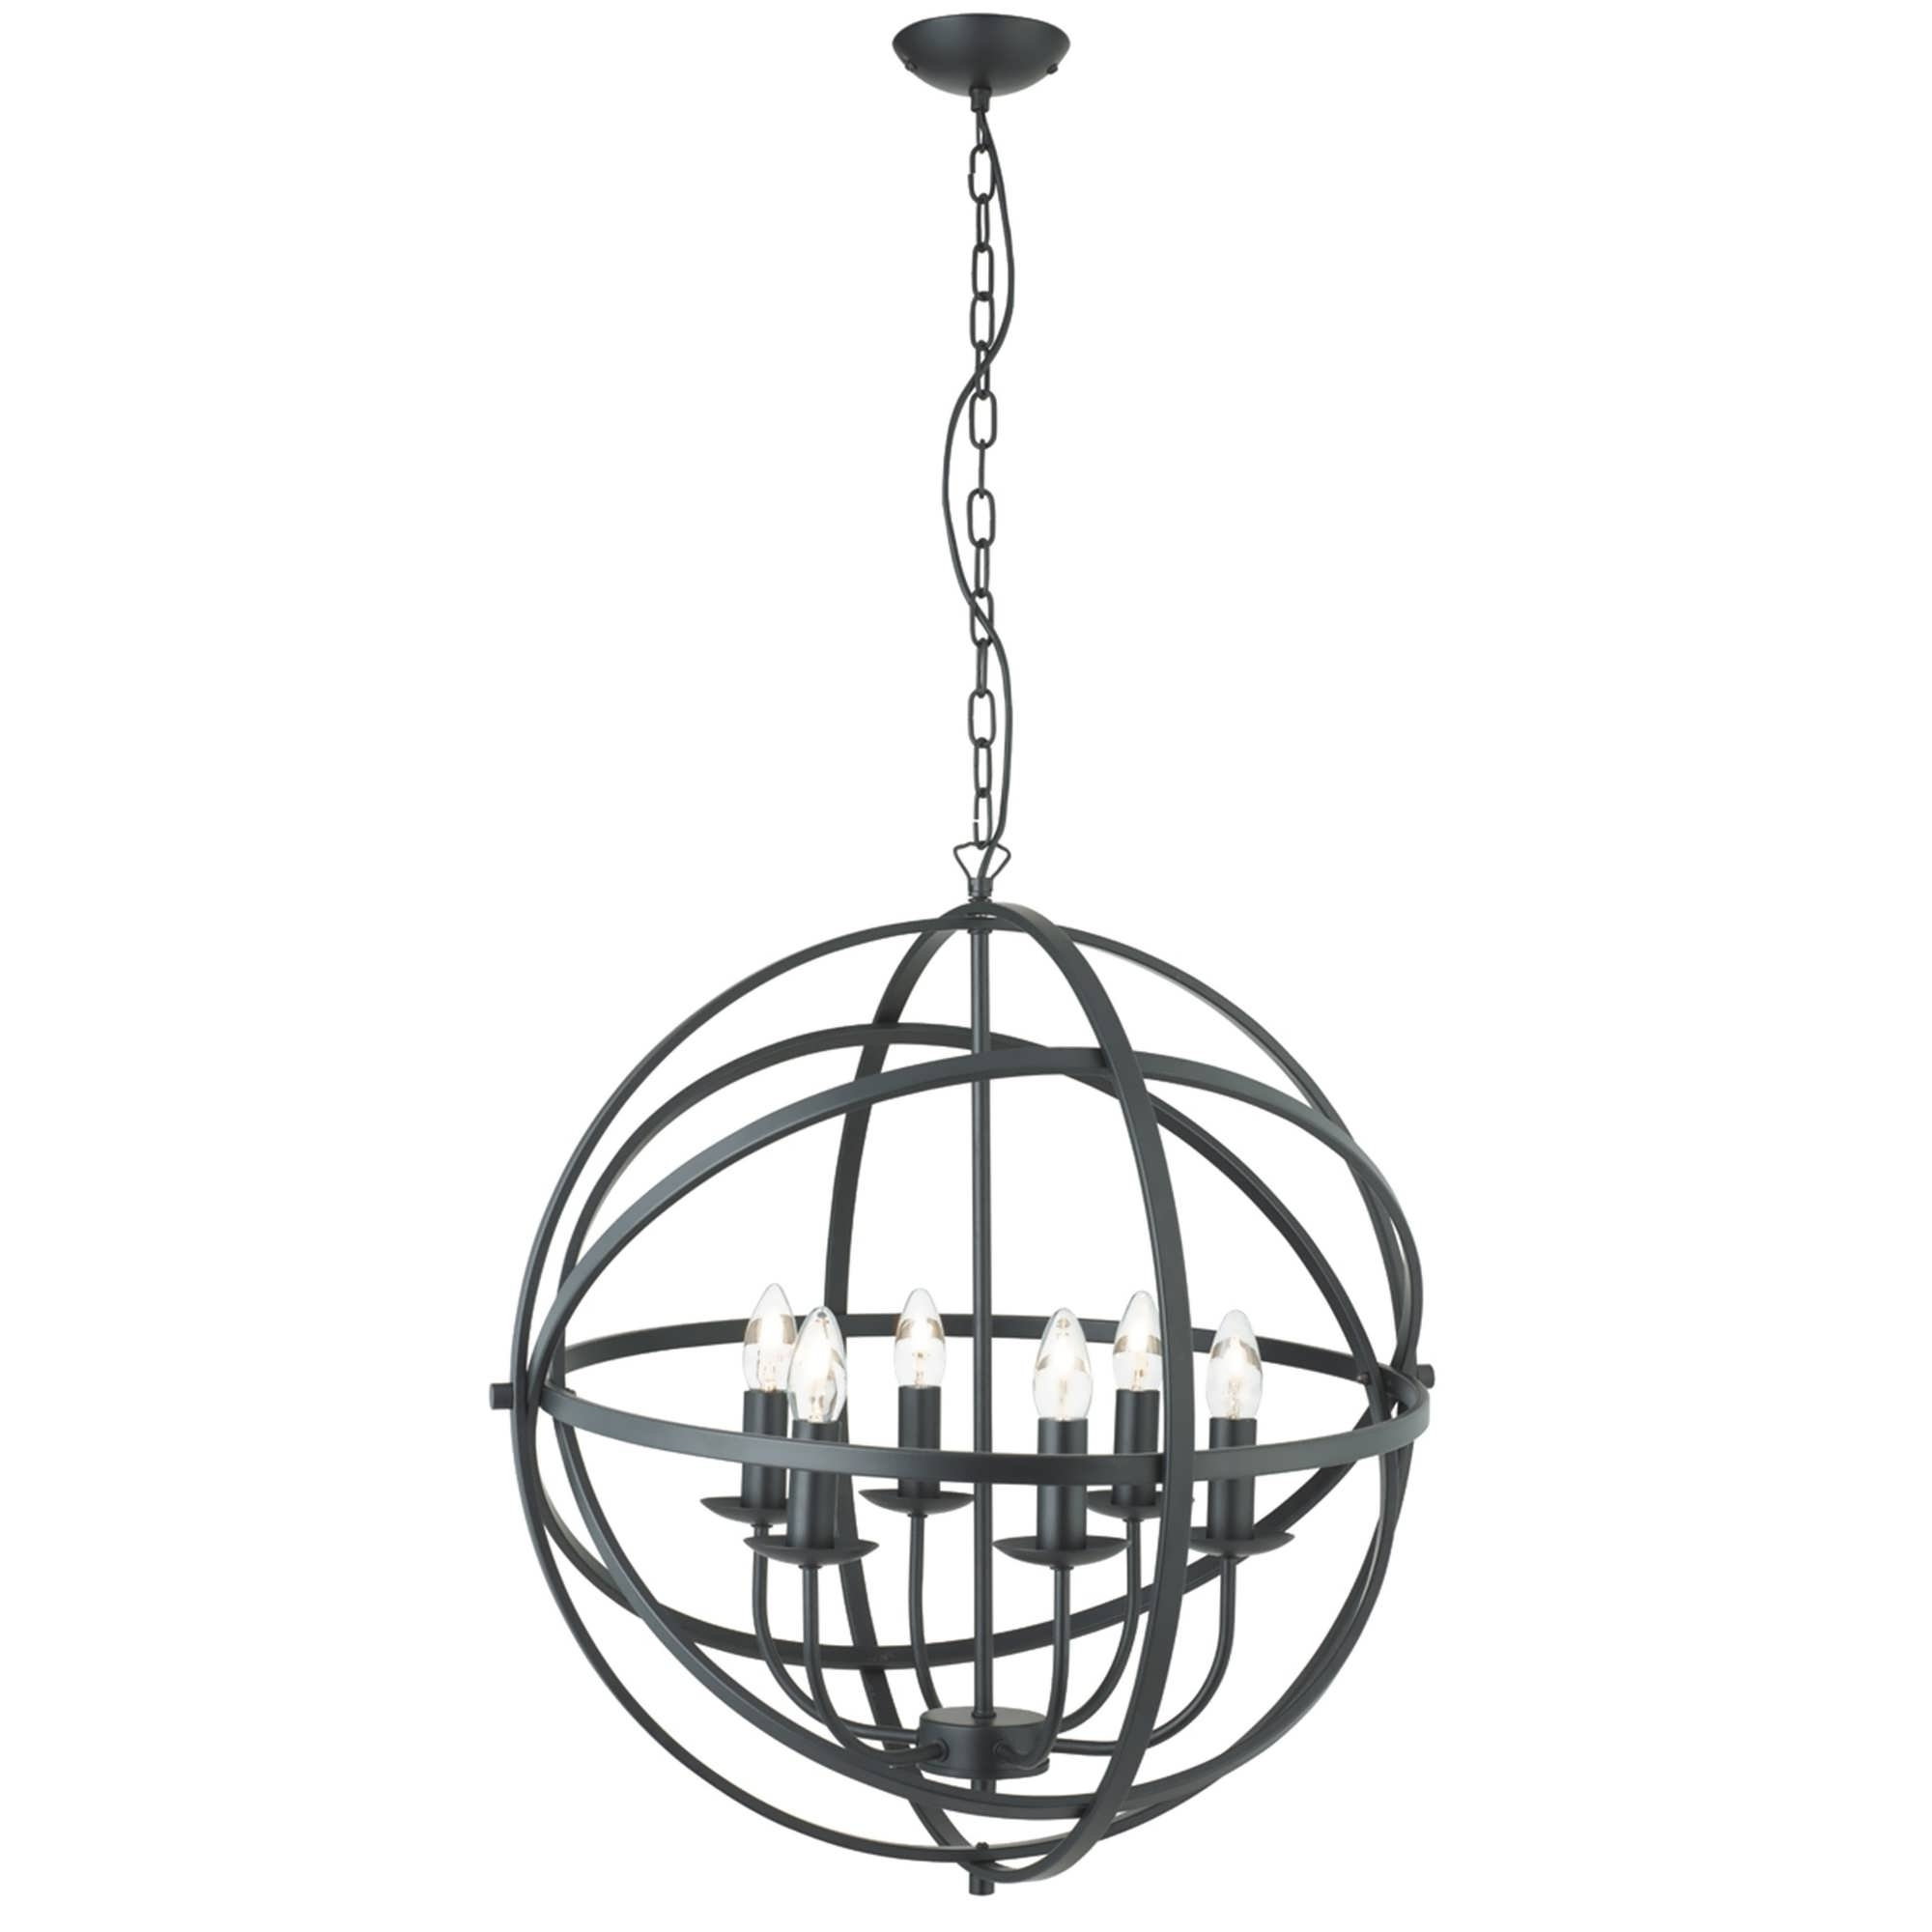 Metal Ball Chandeliers Within Current Chandeliers Design : Marvelous Iron Orb Chandelier Rustic (View 3 of 15)